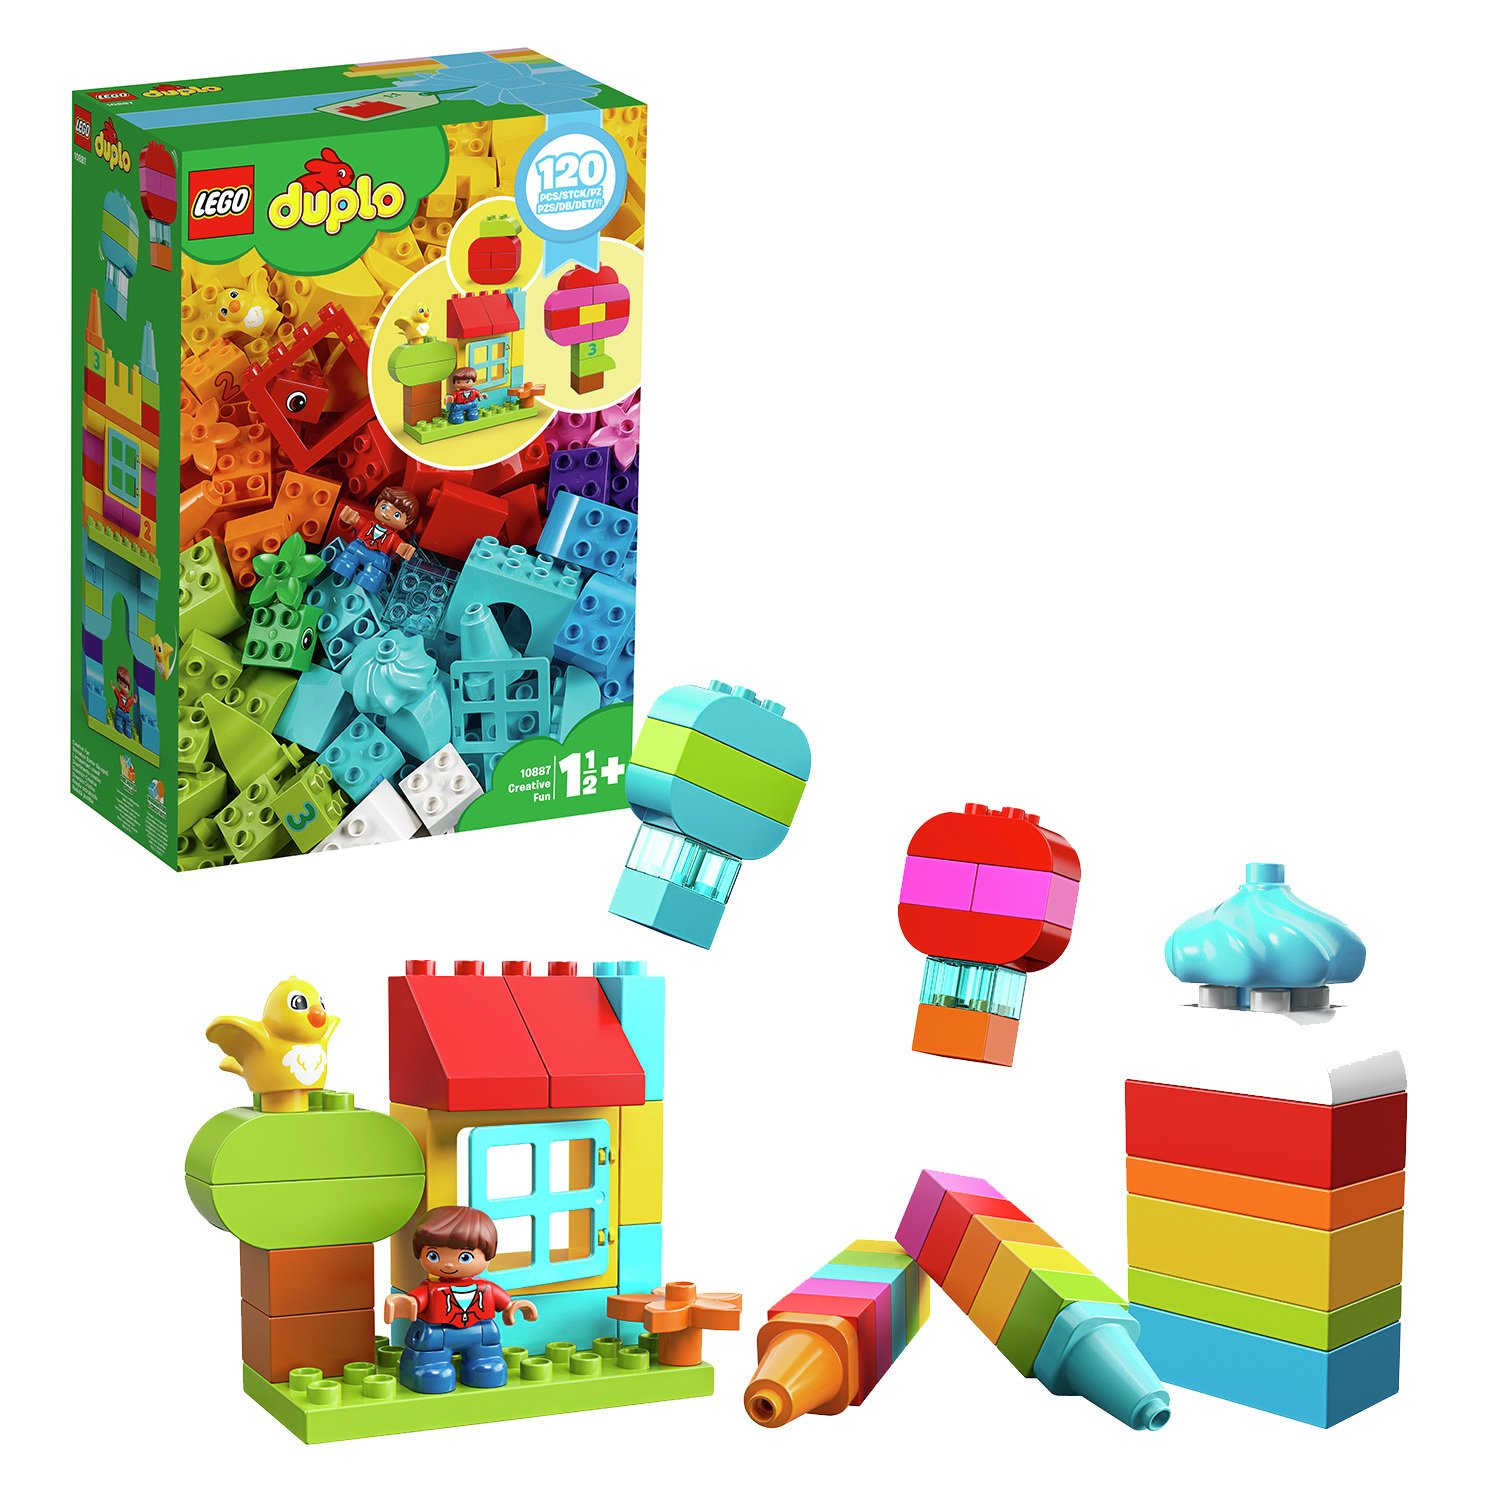 LEGO DUPLO Creative Fun Large Bricks Building Set - 10887